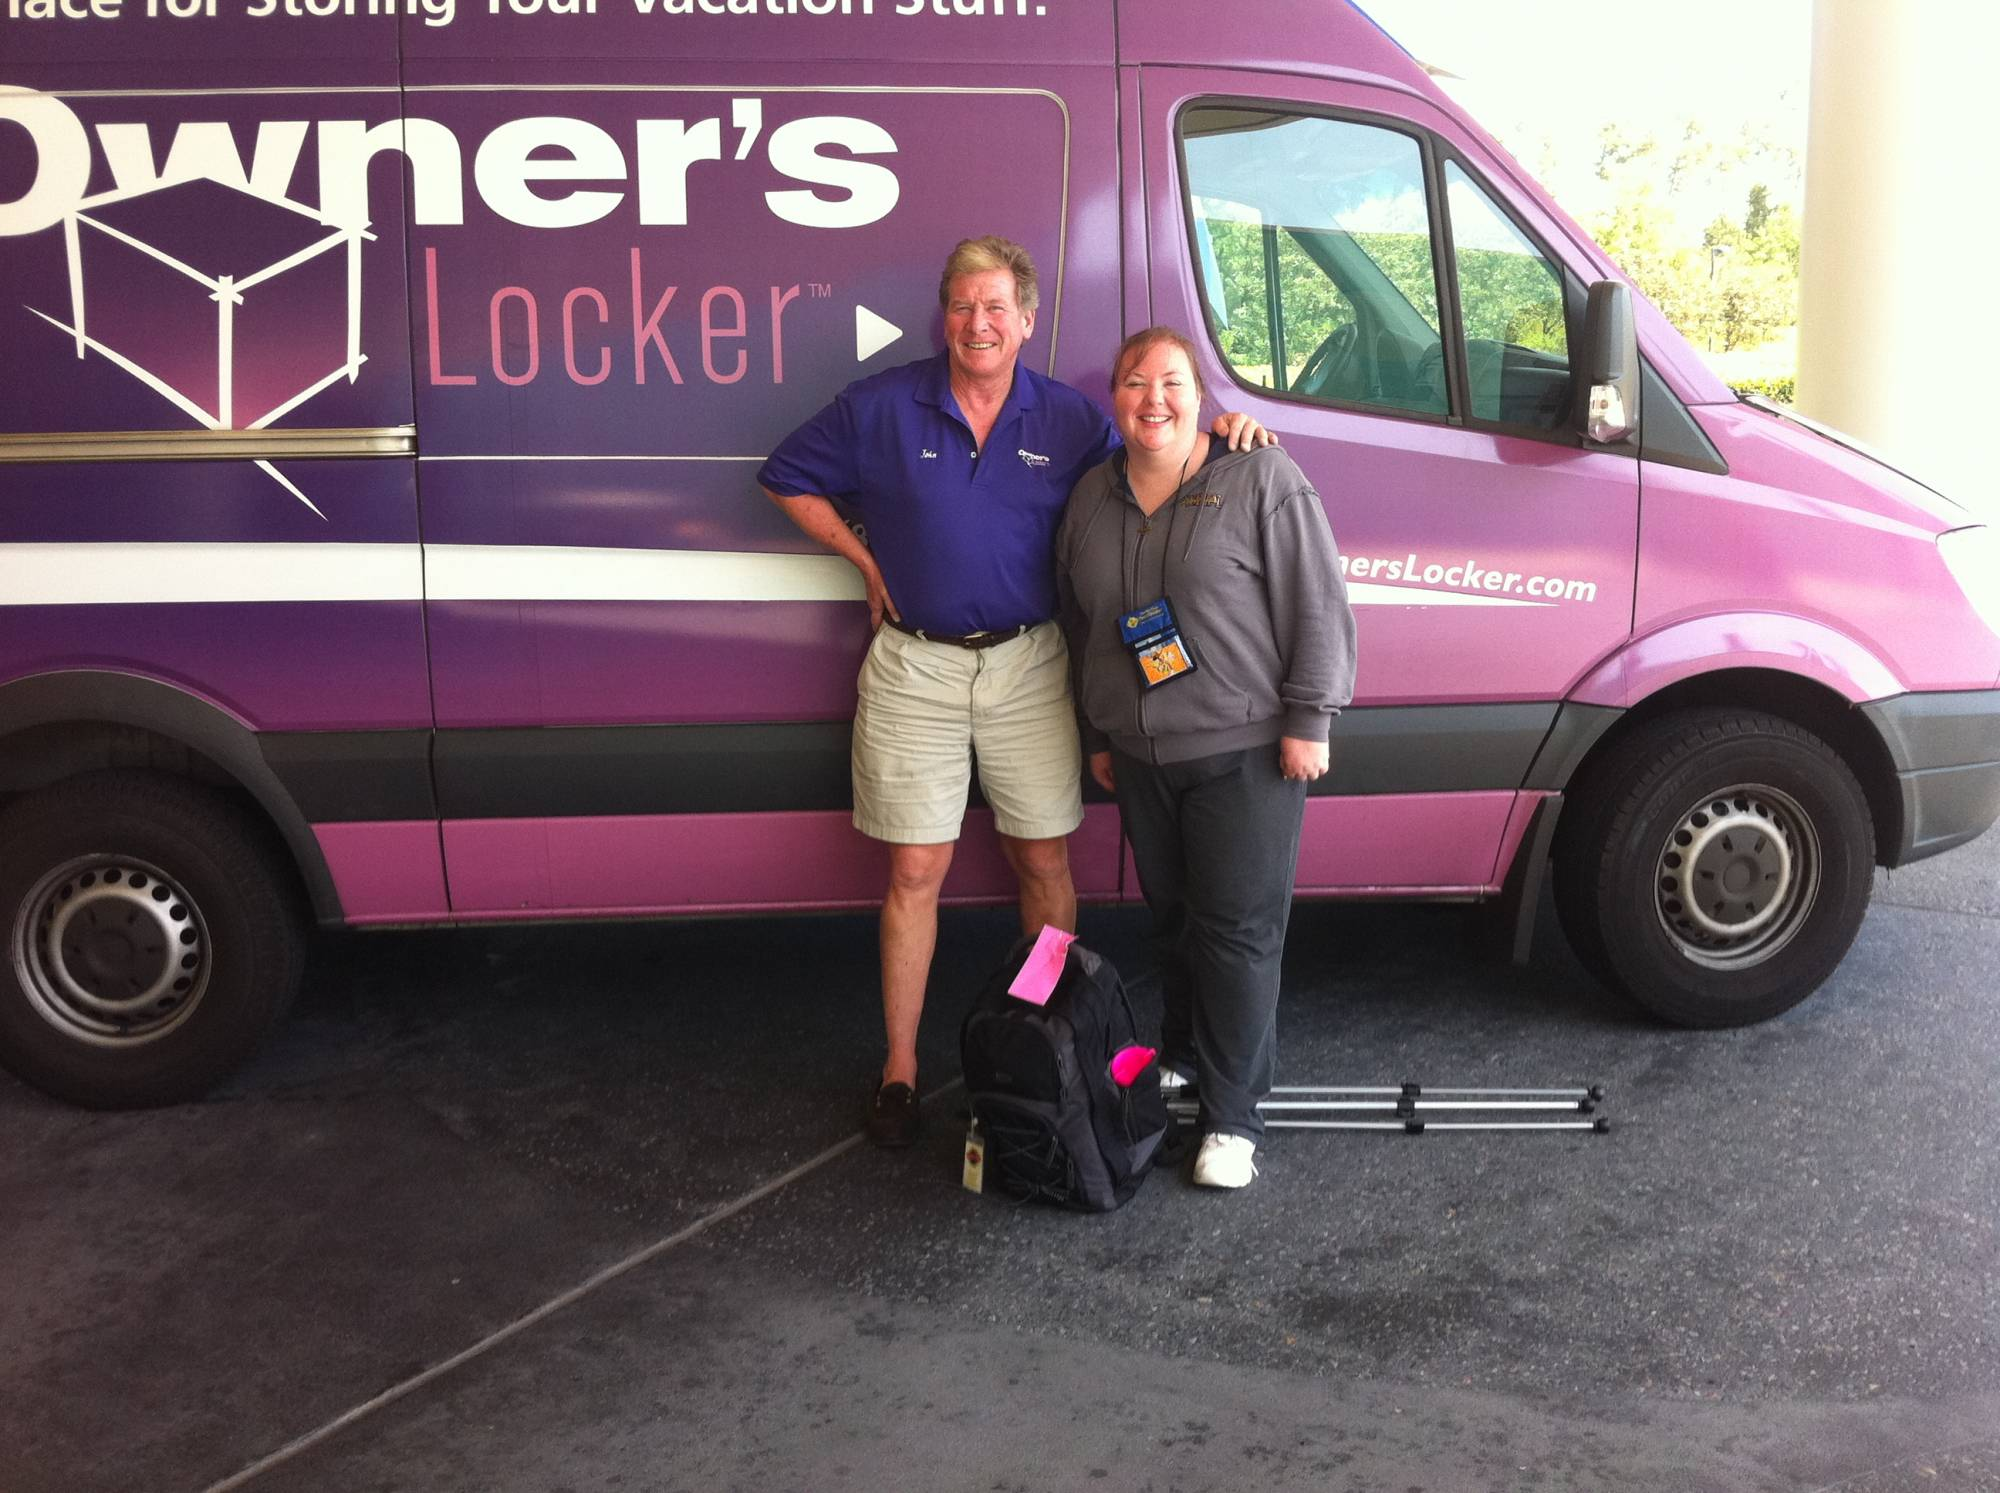 Jennifer and John from Owners Locker